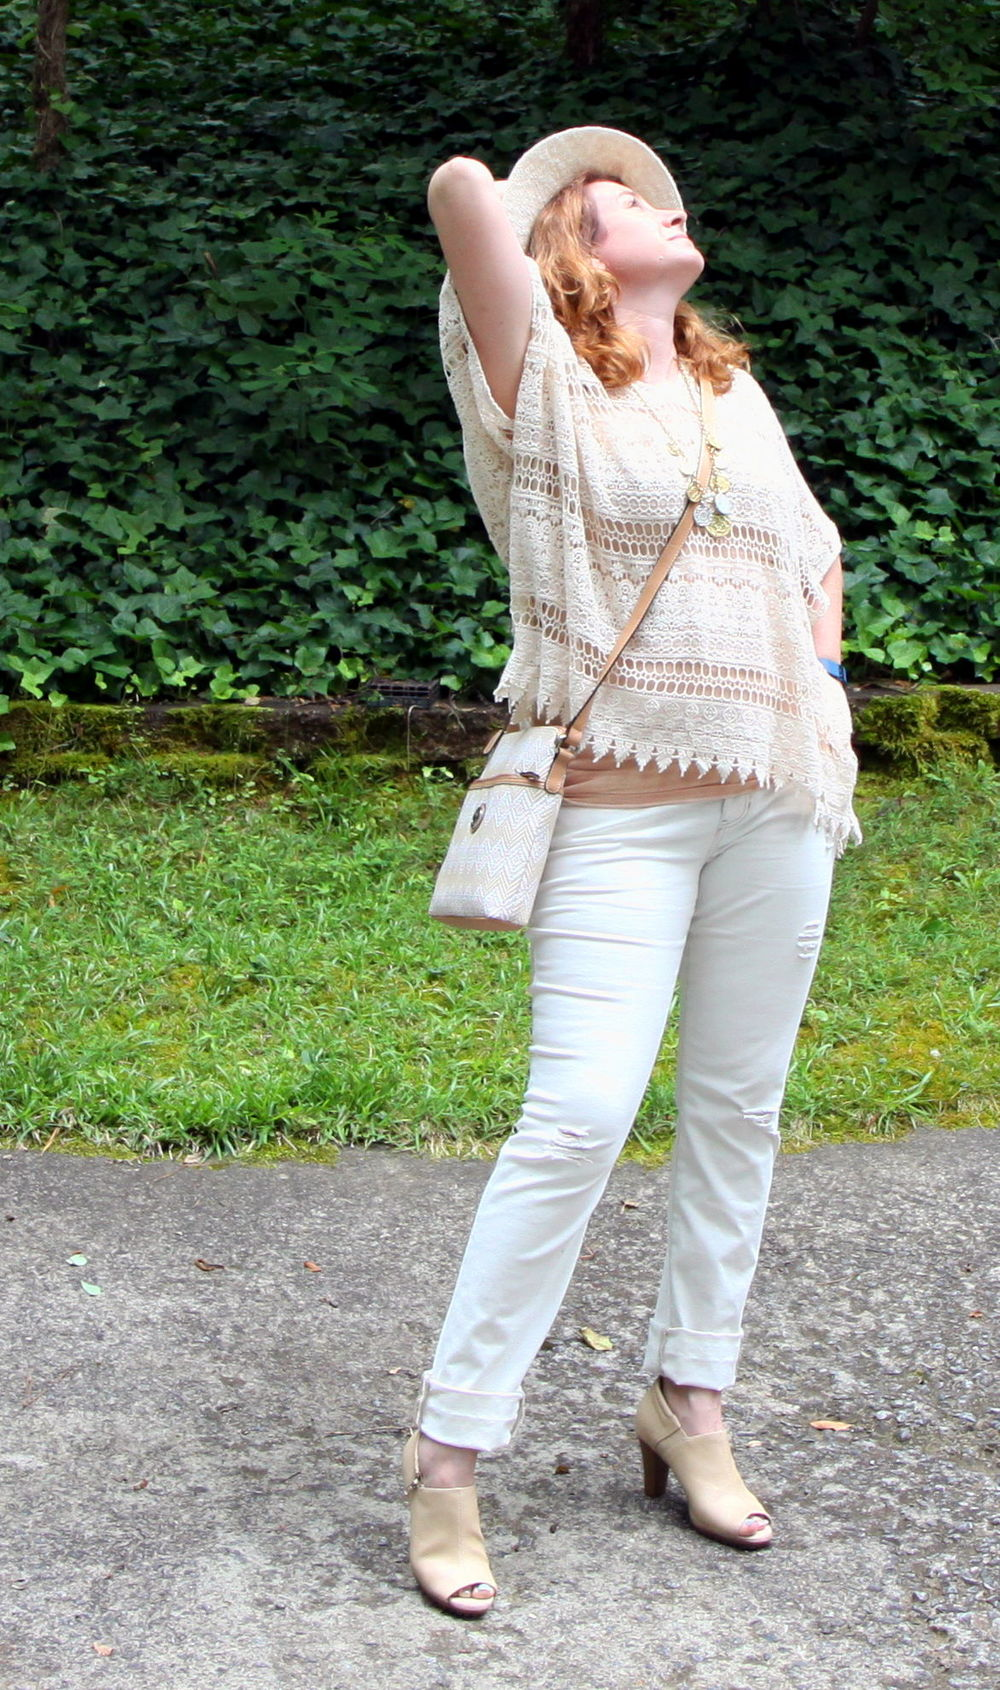 Outfit:  Destructed Slim Boyfriend  jeans,  Capri Top , and  Simple Cami  from cabi Spring 2016. Shady Hat from cabi Spring 2014. Coin Necklace from cabi Fall 2014.   Giani Bernini Diamond Woven Crossbody  handbag from Macy's.  Bird Cage  shooties by Aerosoles.